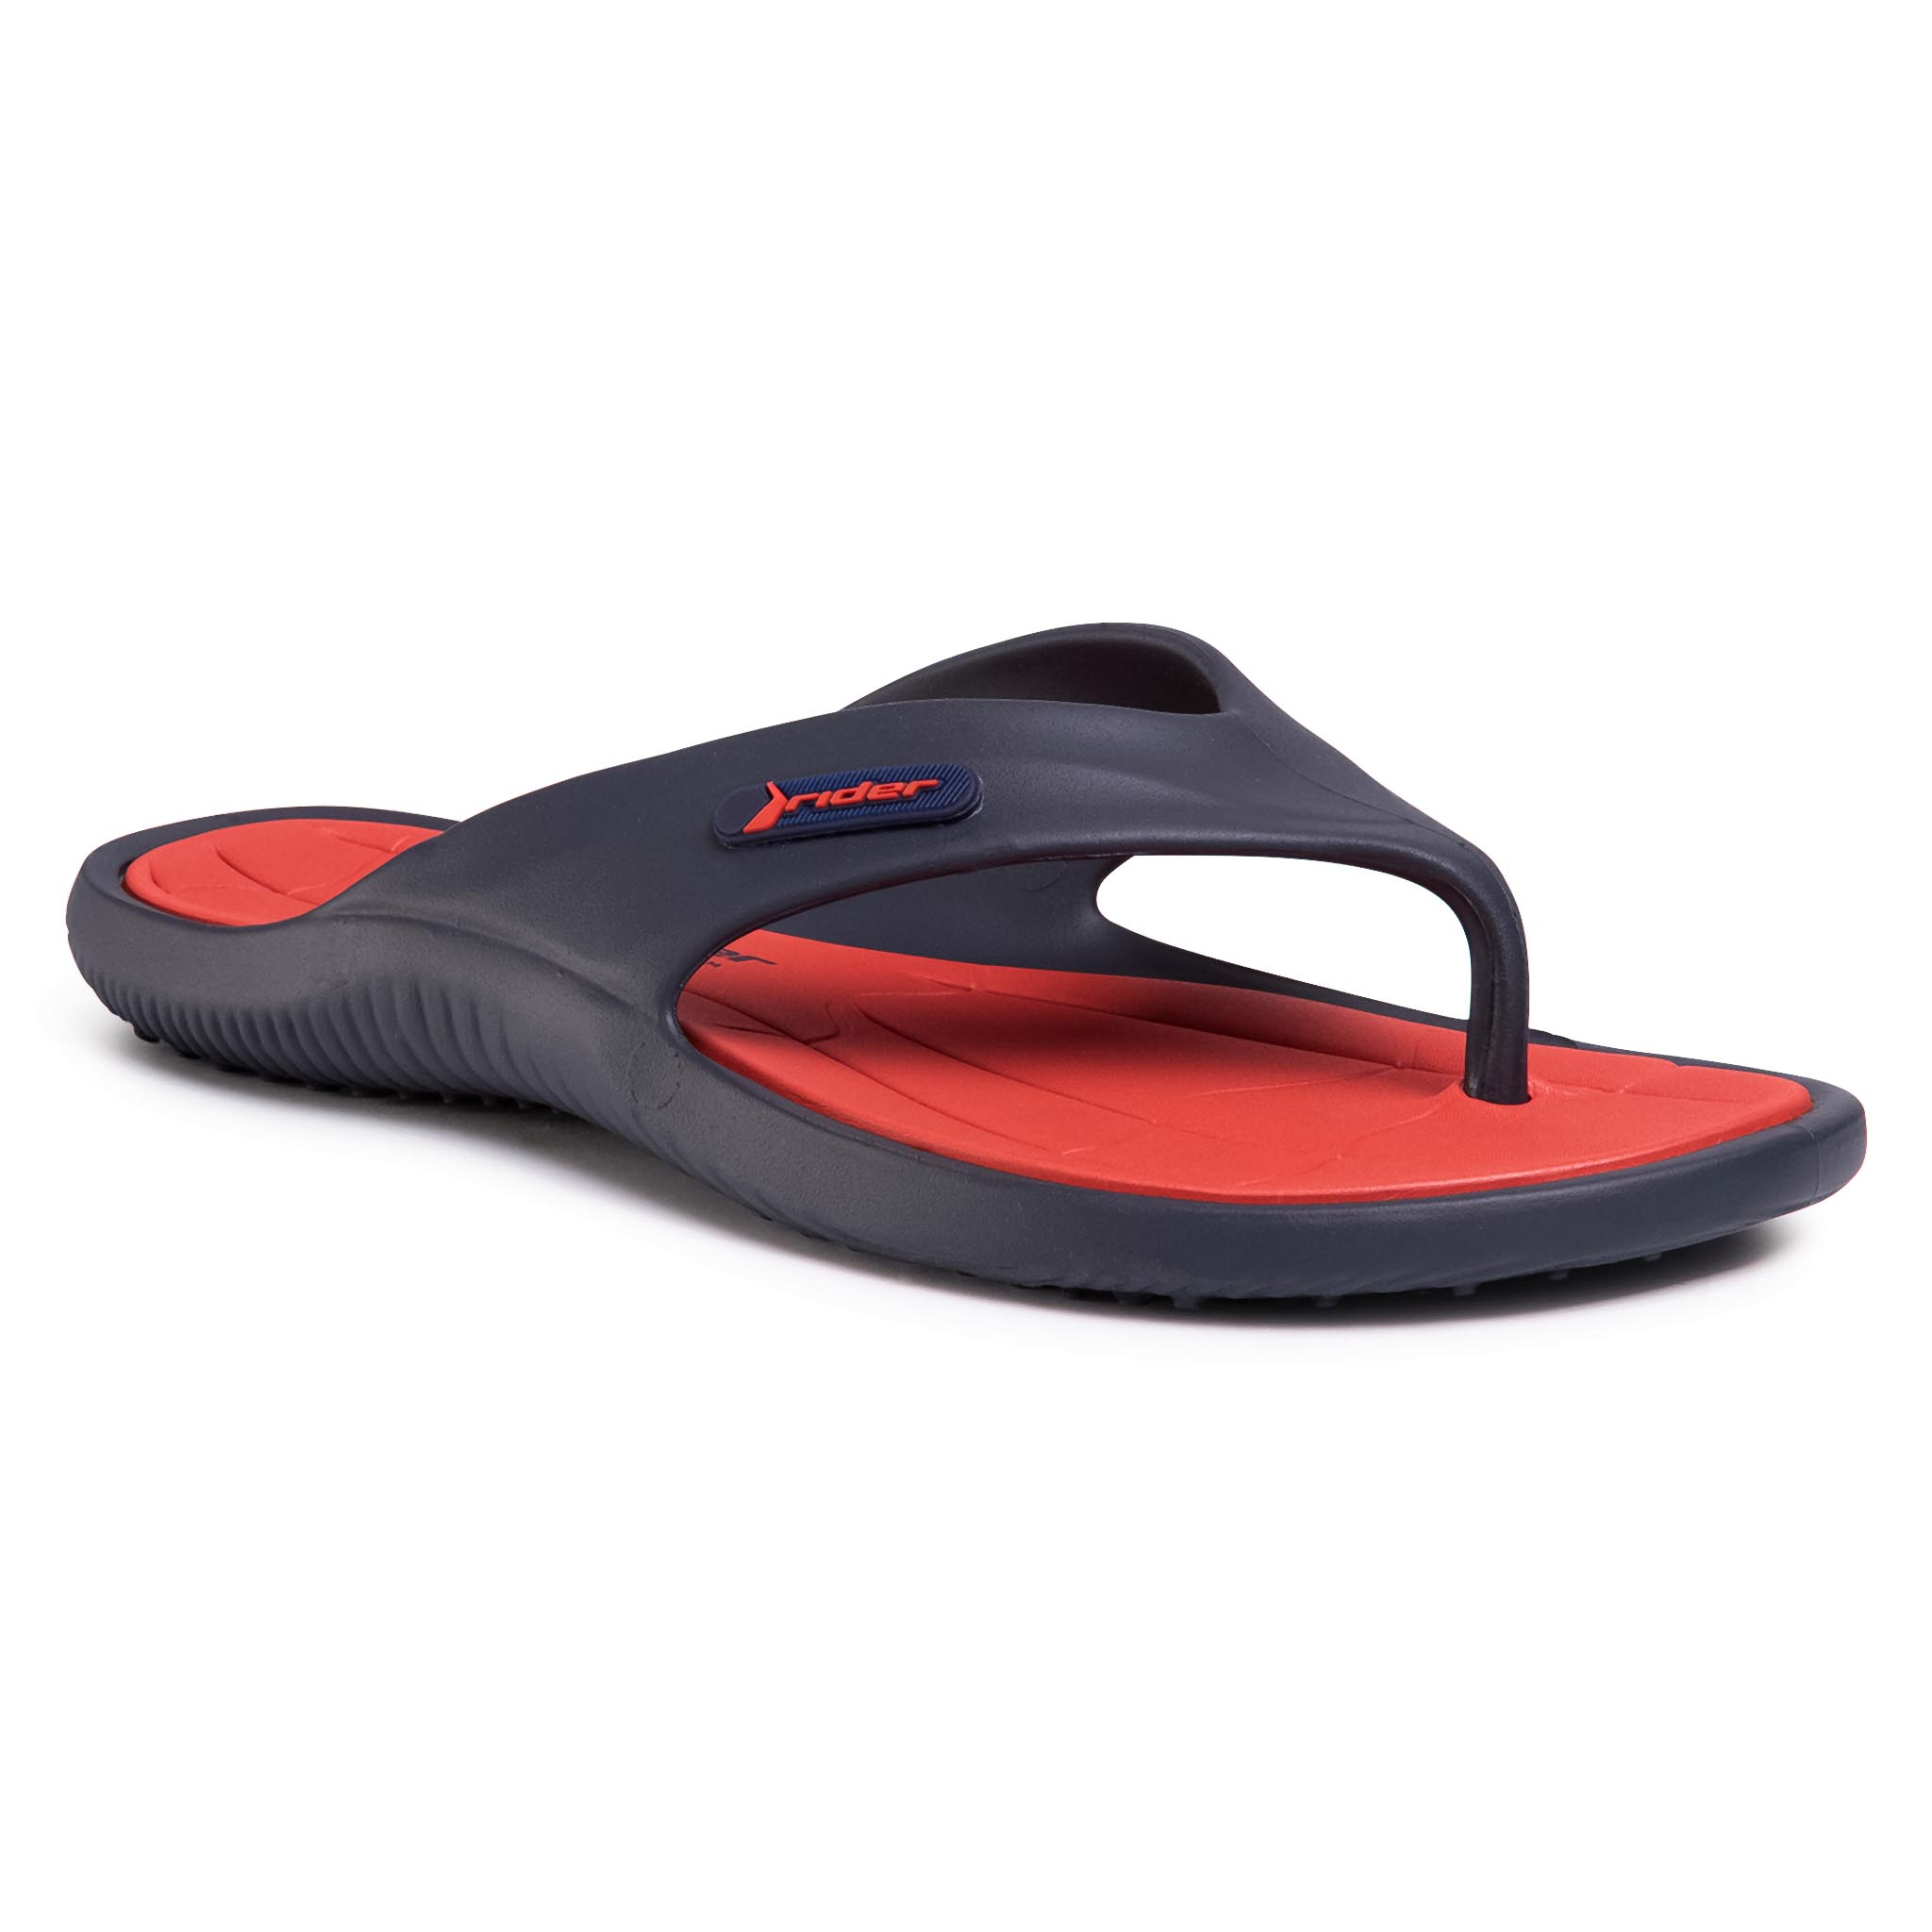 Flip Flop Rider - Cape Xiii Ad 82818 Blue/Red 20698 imagine